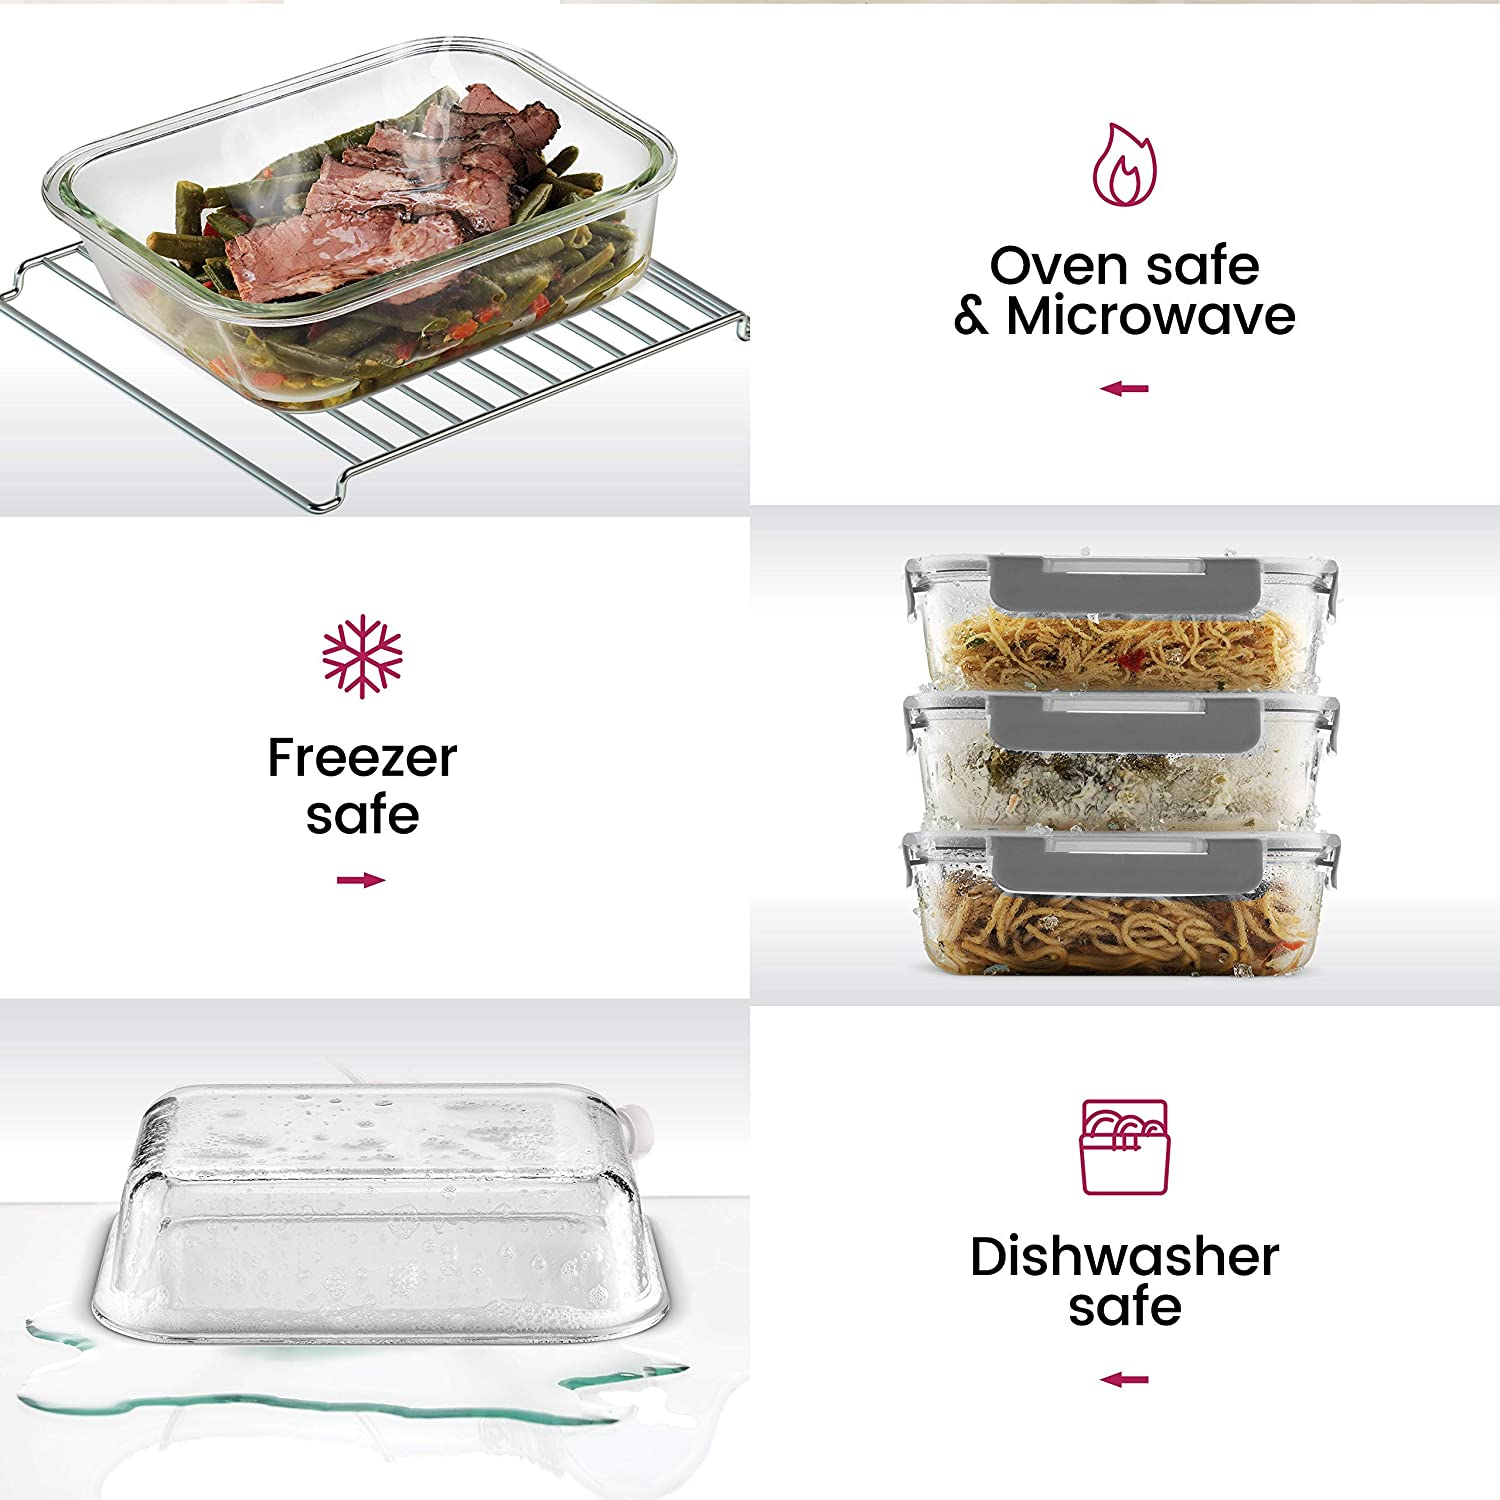 24-Piece Superior Glass Food Storage Containers Set - Newly Innovated Hinged BPA-free Locking lids - 100% Leakproof Glass Meal-Prep Containers, Great On-the-Go & Freezer-to-Oven-Safe Food Containers: Kitchen & Dining